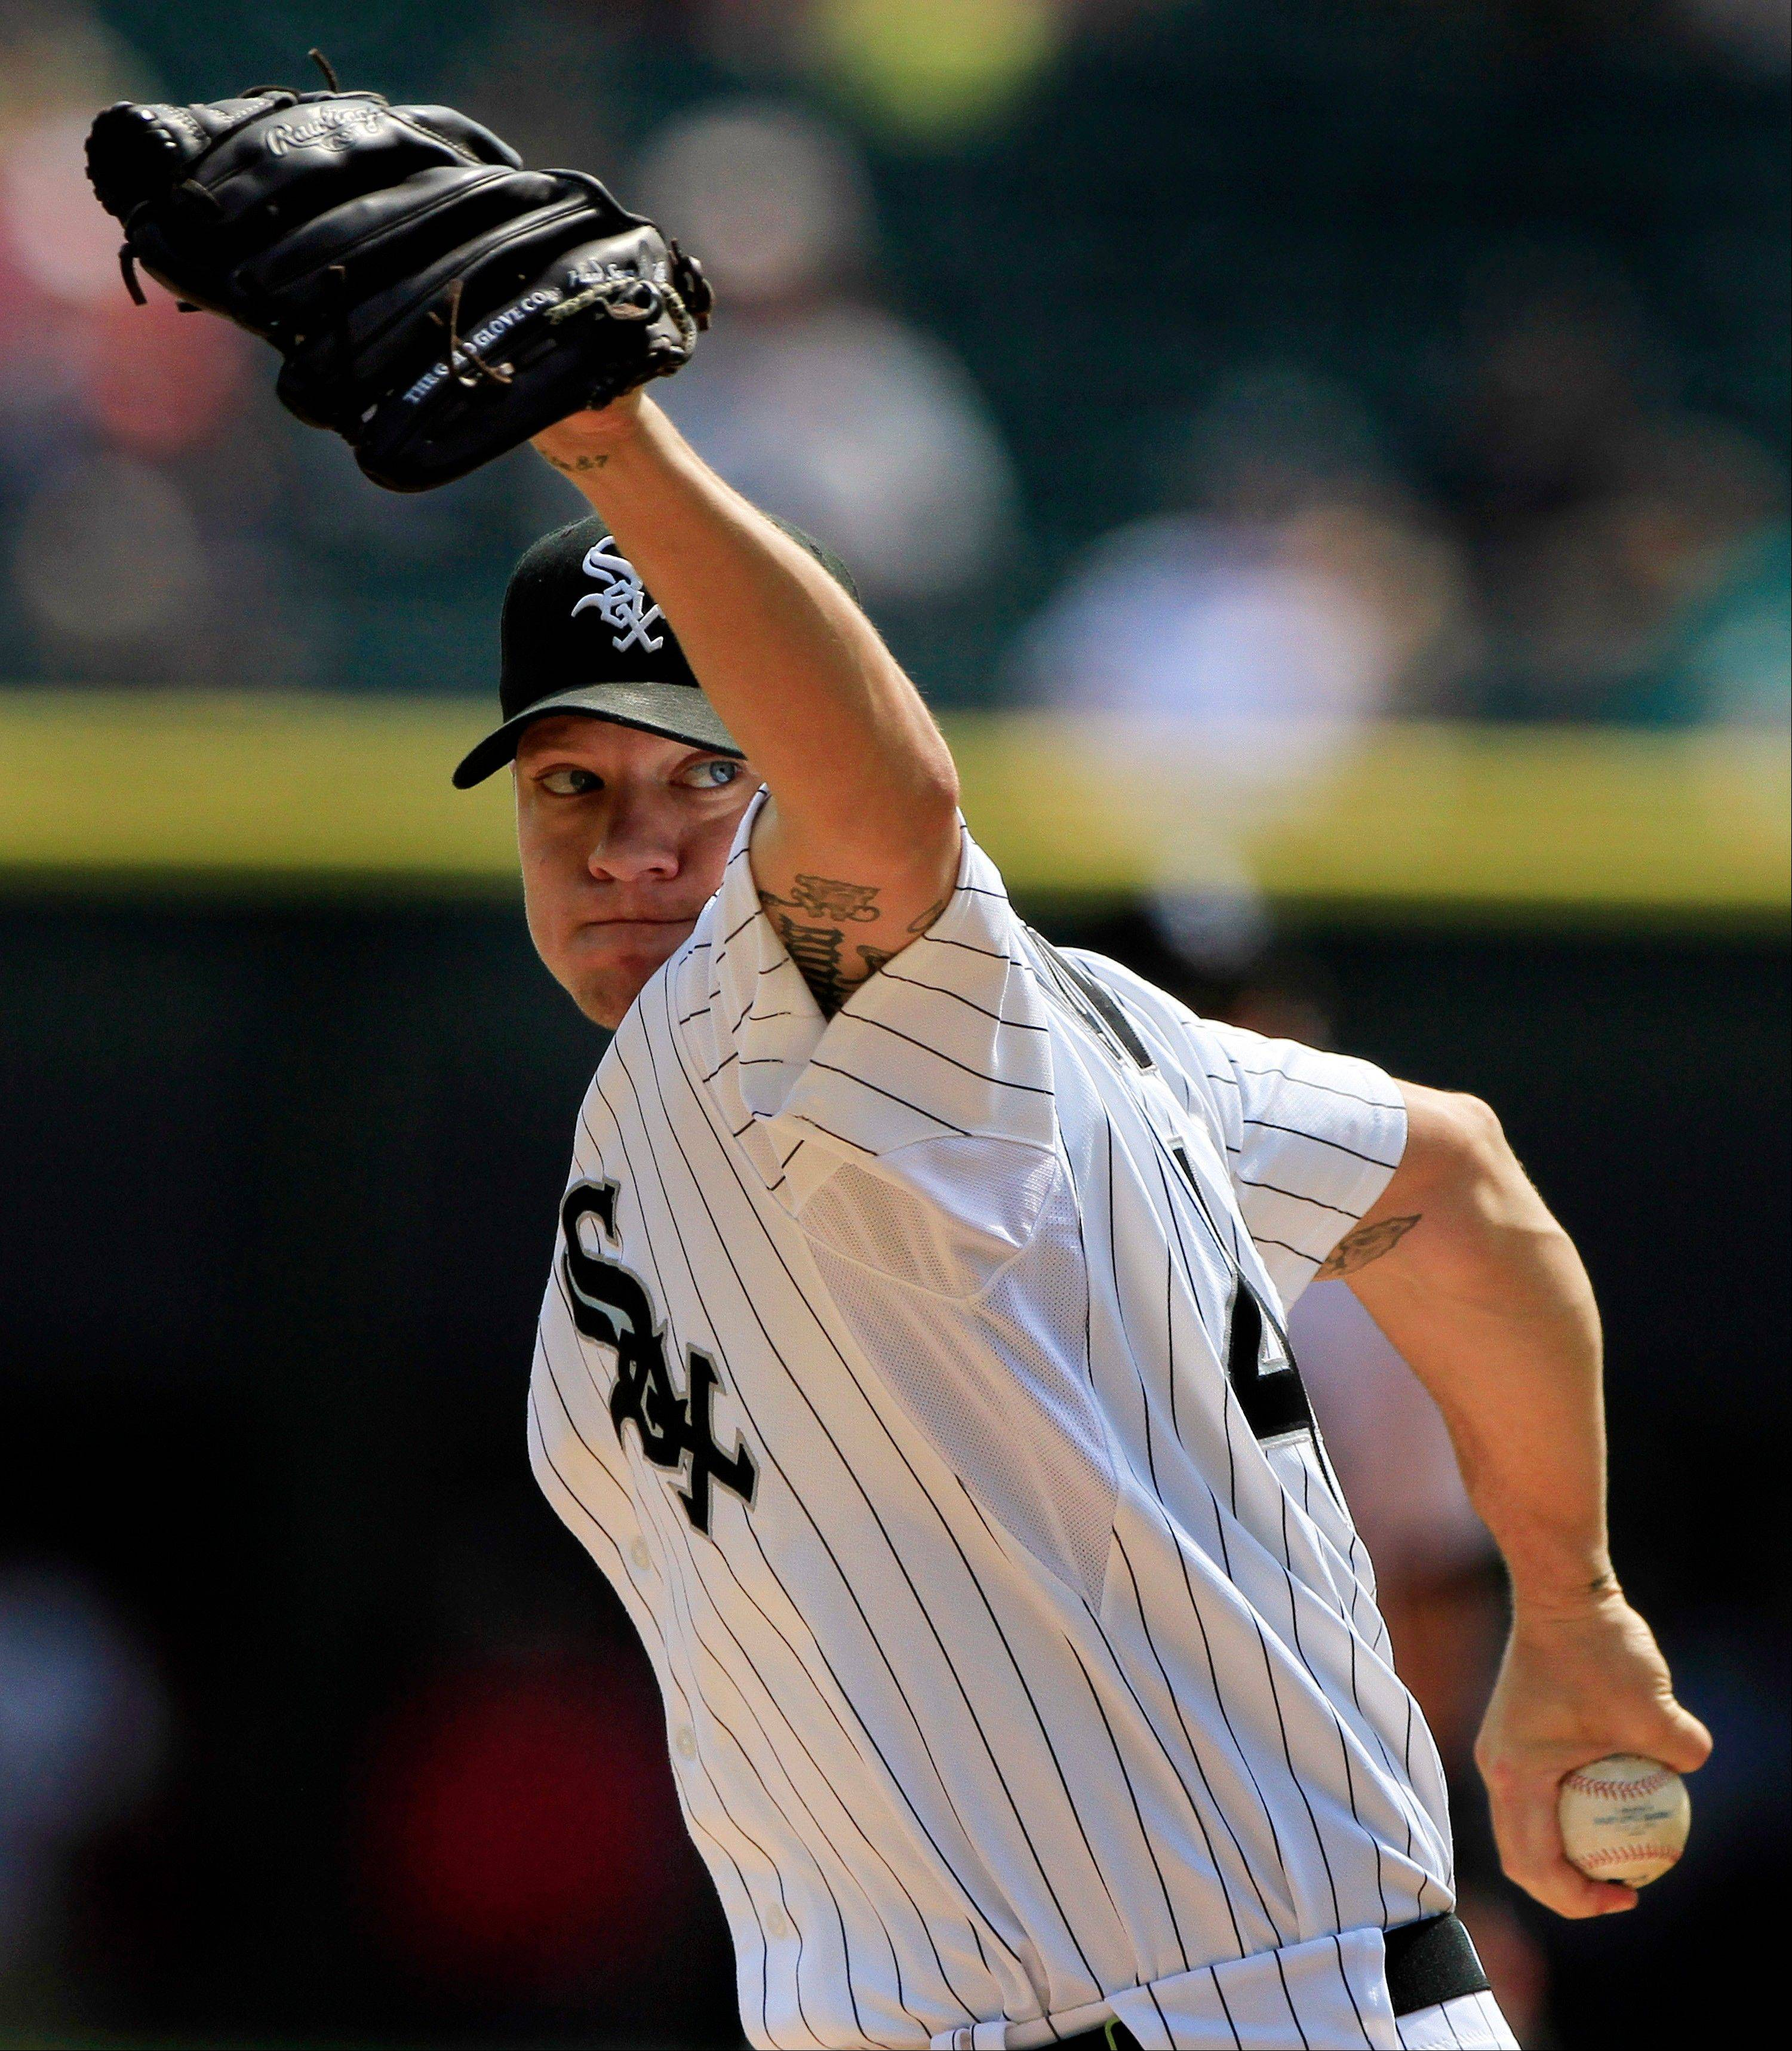 Chicago White Sox starting pitcher Jake Peavy throws to a Minnesota Twins batter during the first inning of a baseball game, Wednesday, Sept. 5, 2012, in Chicago. (AP Photo/John Smierciak)